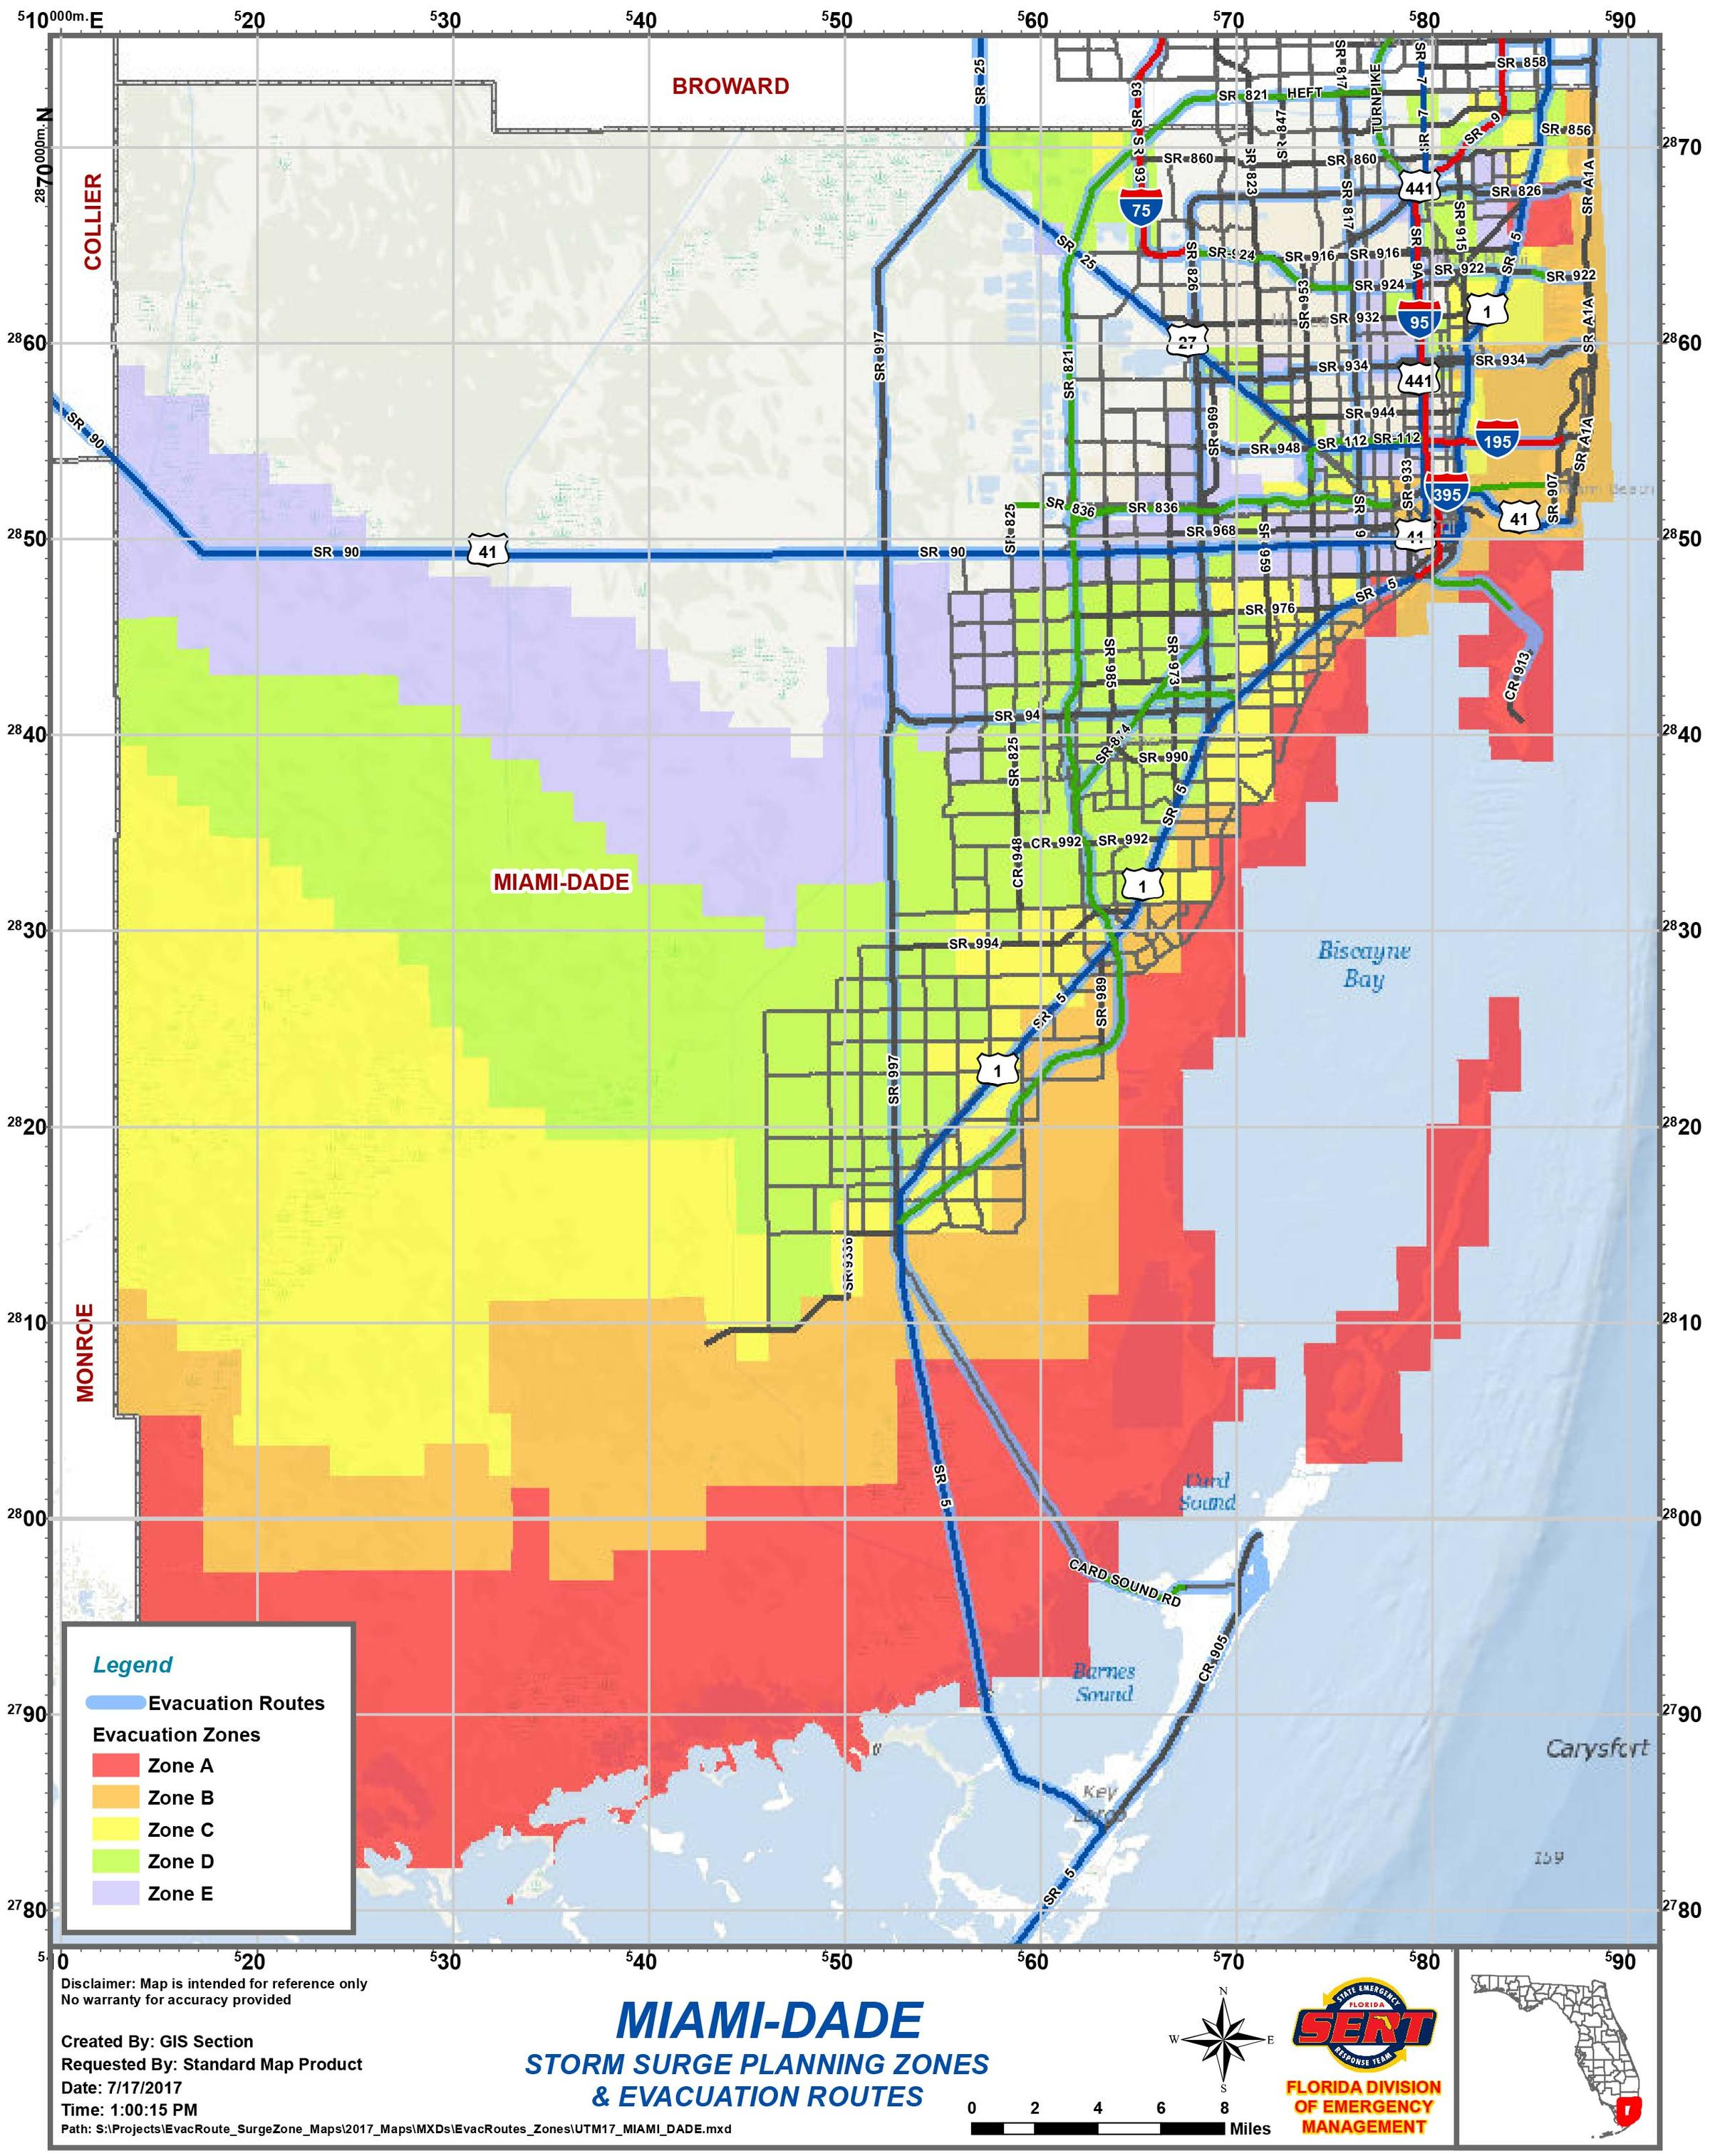 Are You In An Evacuation Zone? Here Is How To Know | WLRN Miami Dade County Map Roads on saint johns county road map, knox county road map, weston county road map, davie road map, escambia county road map, miami-dade county gis map, saint lucie county road map, st. petersburg road map, miami-dade municipalities map, dade county city map, contra costa county road map, sumter county road map, miami-dade area map, alameda county road map, santa rosa road map, south miami road map, miami-dade cities map, highlands county road map, gulf county road map, bay county road map,